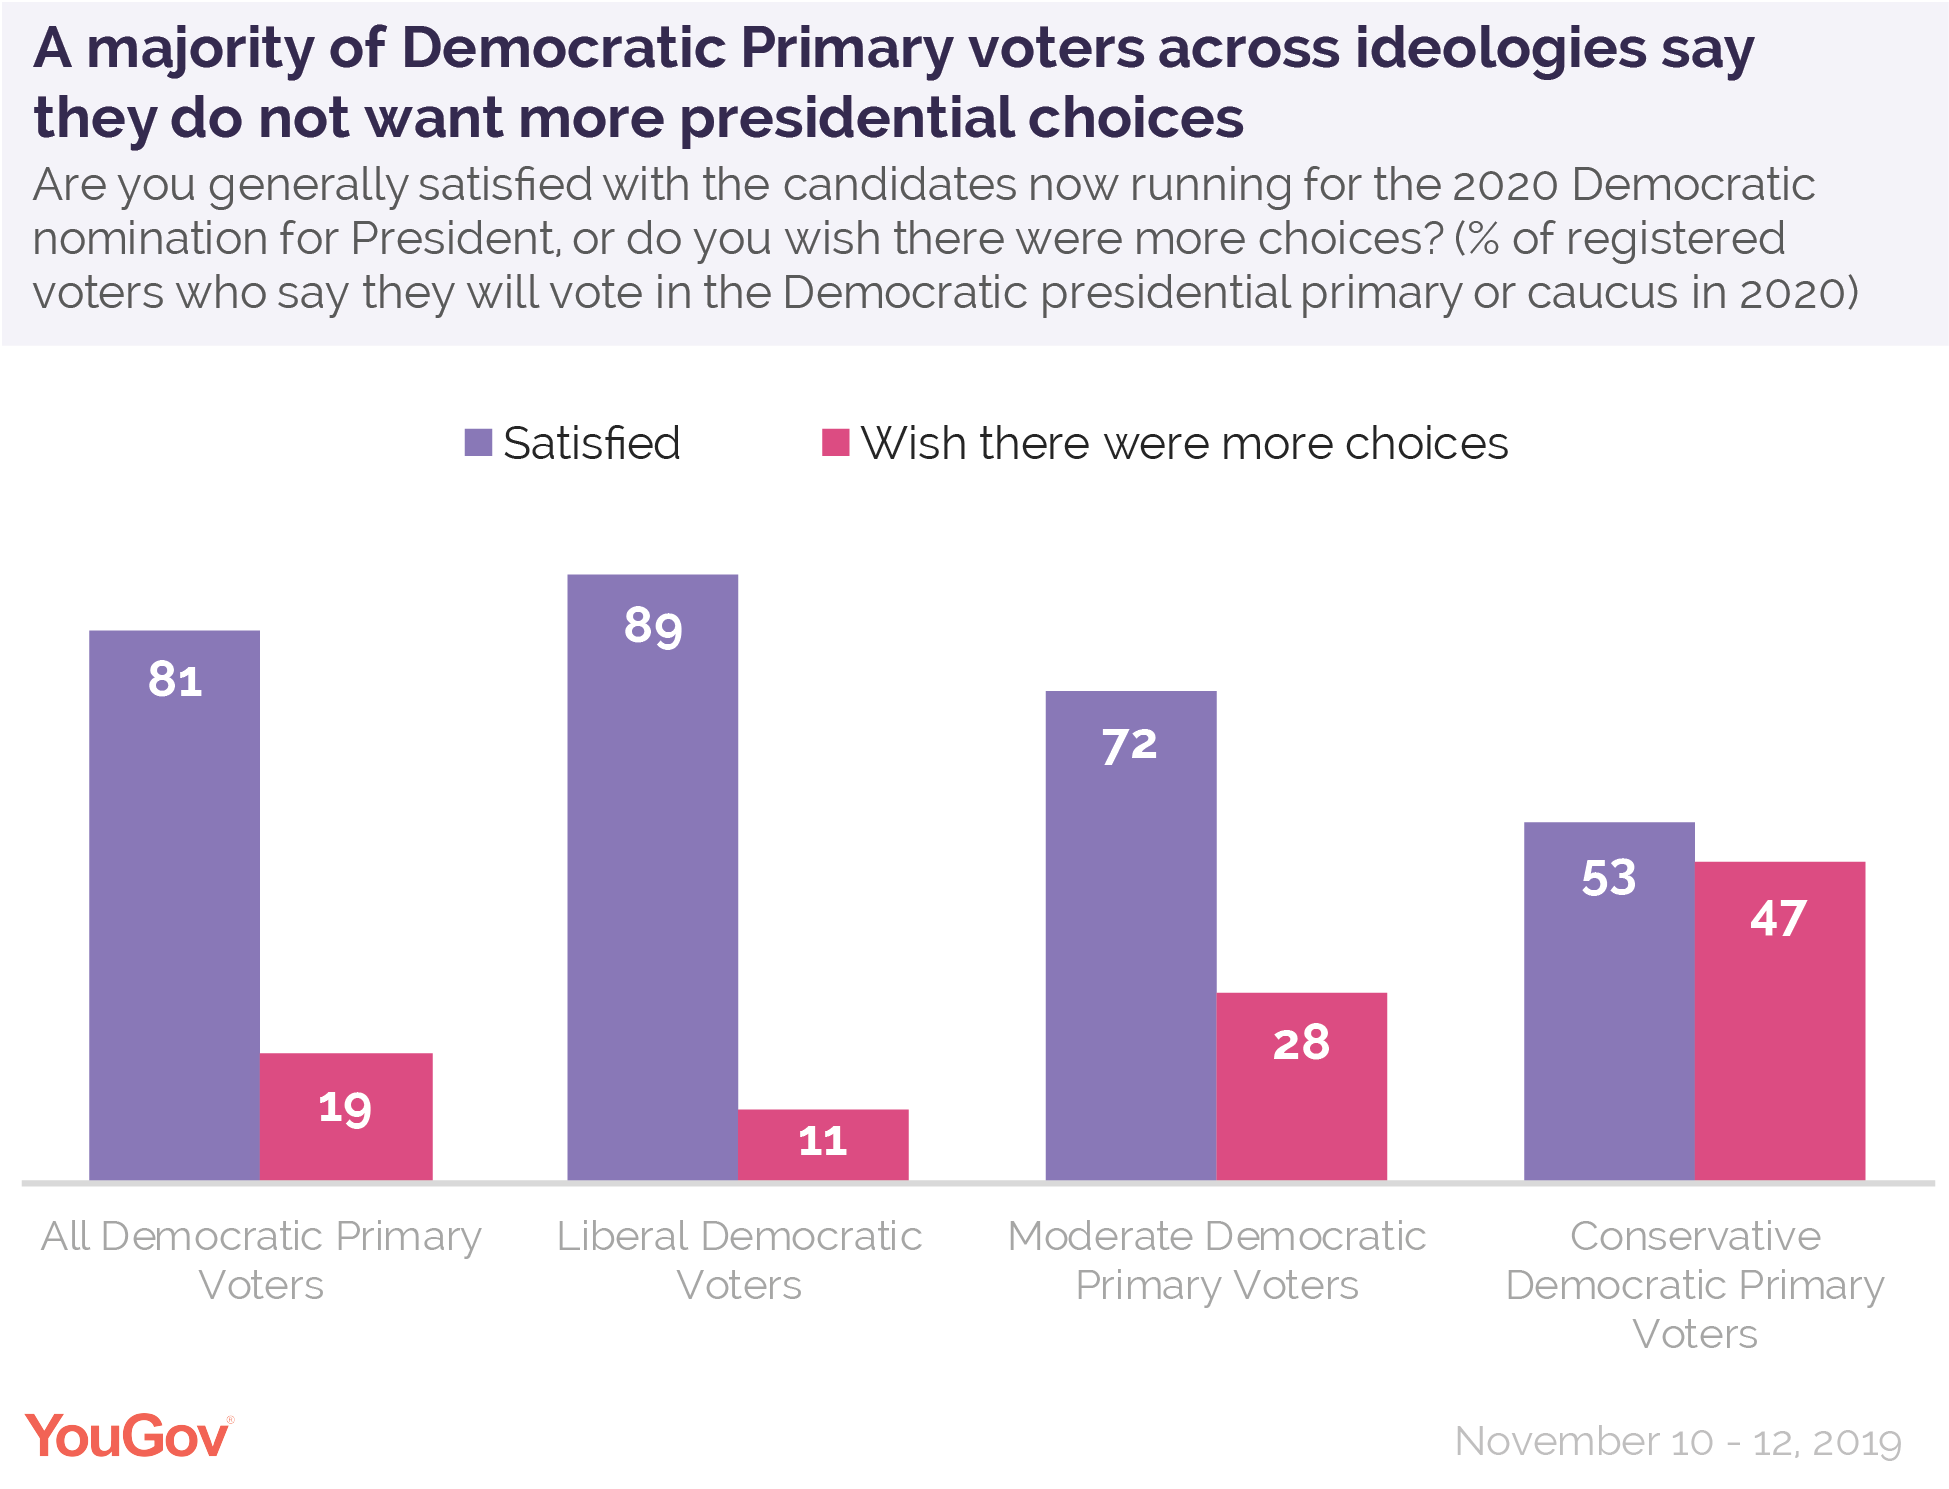 A majority of Democratic Primary voters across ideologies say they do not want more presidential choices